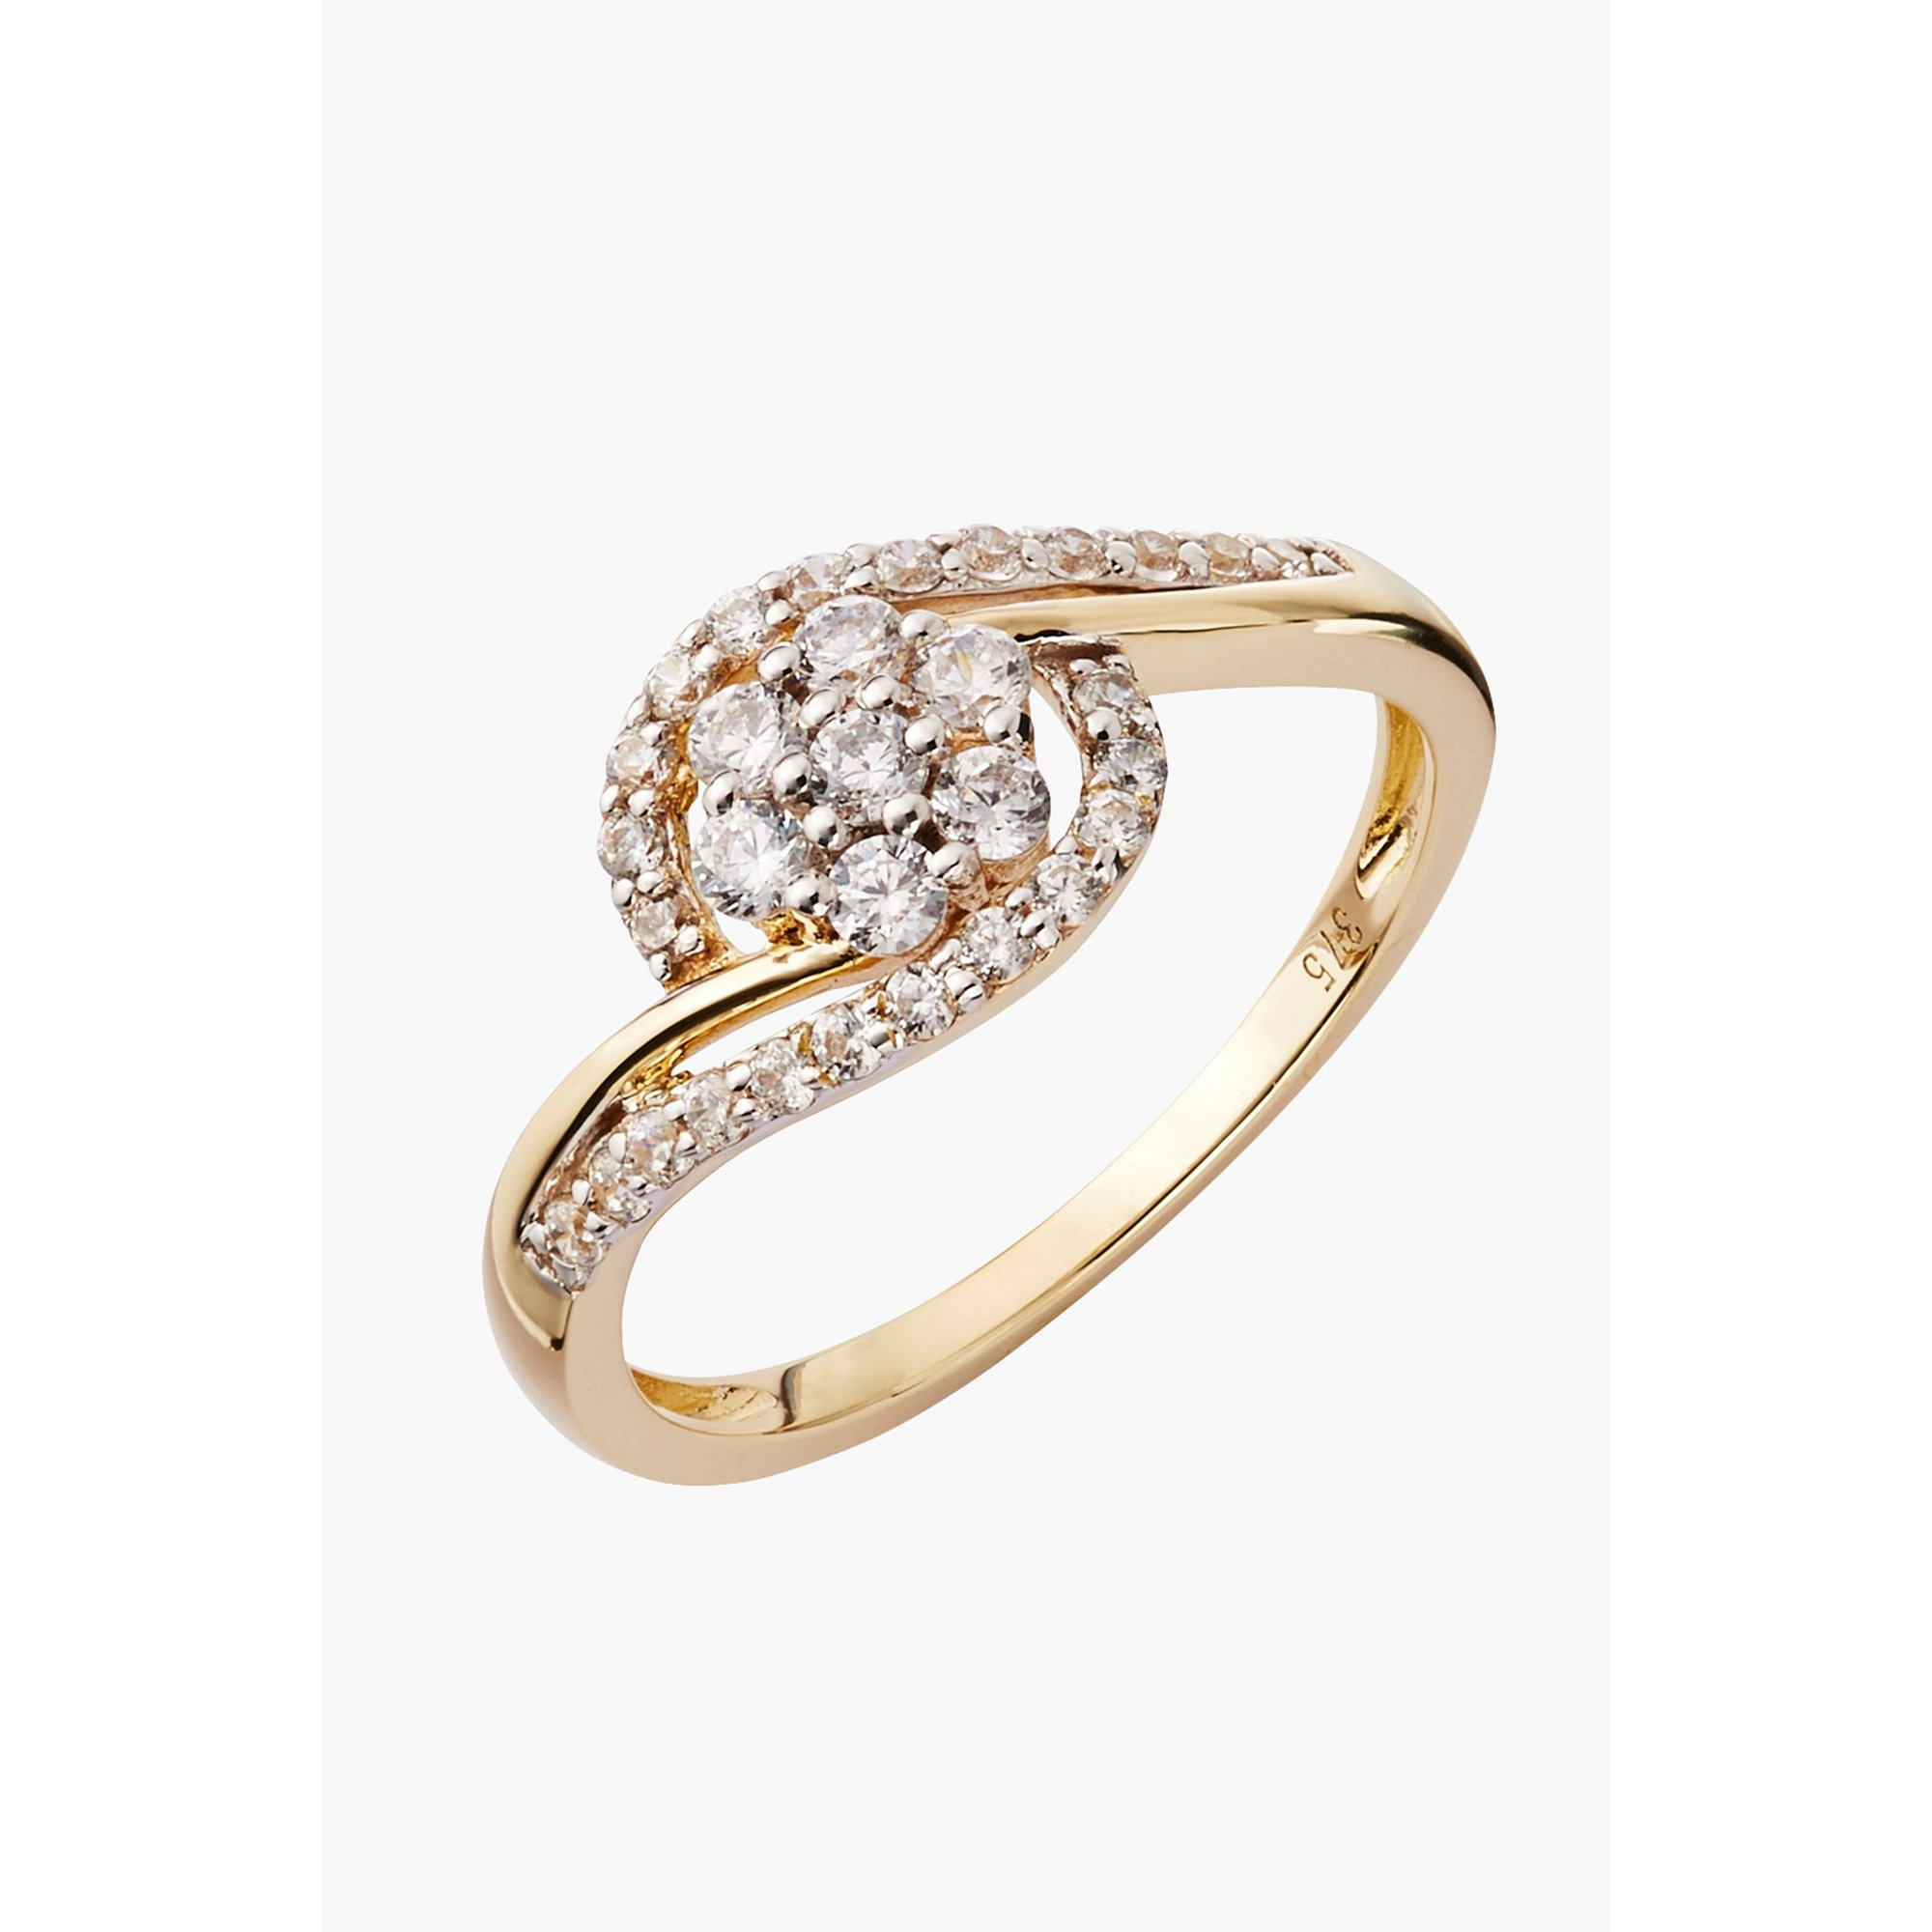 Image of 9ct Gold CZ Twist Ring